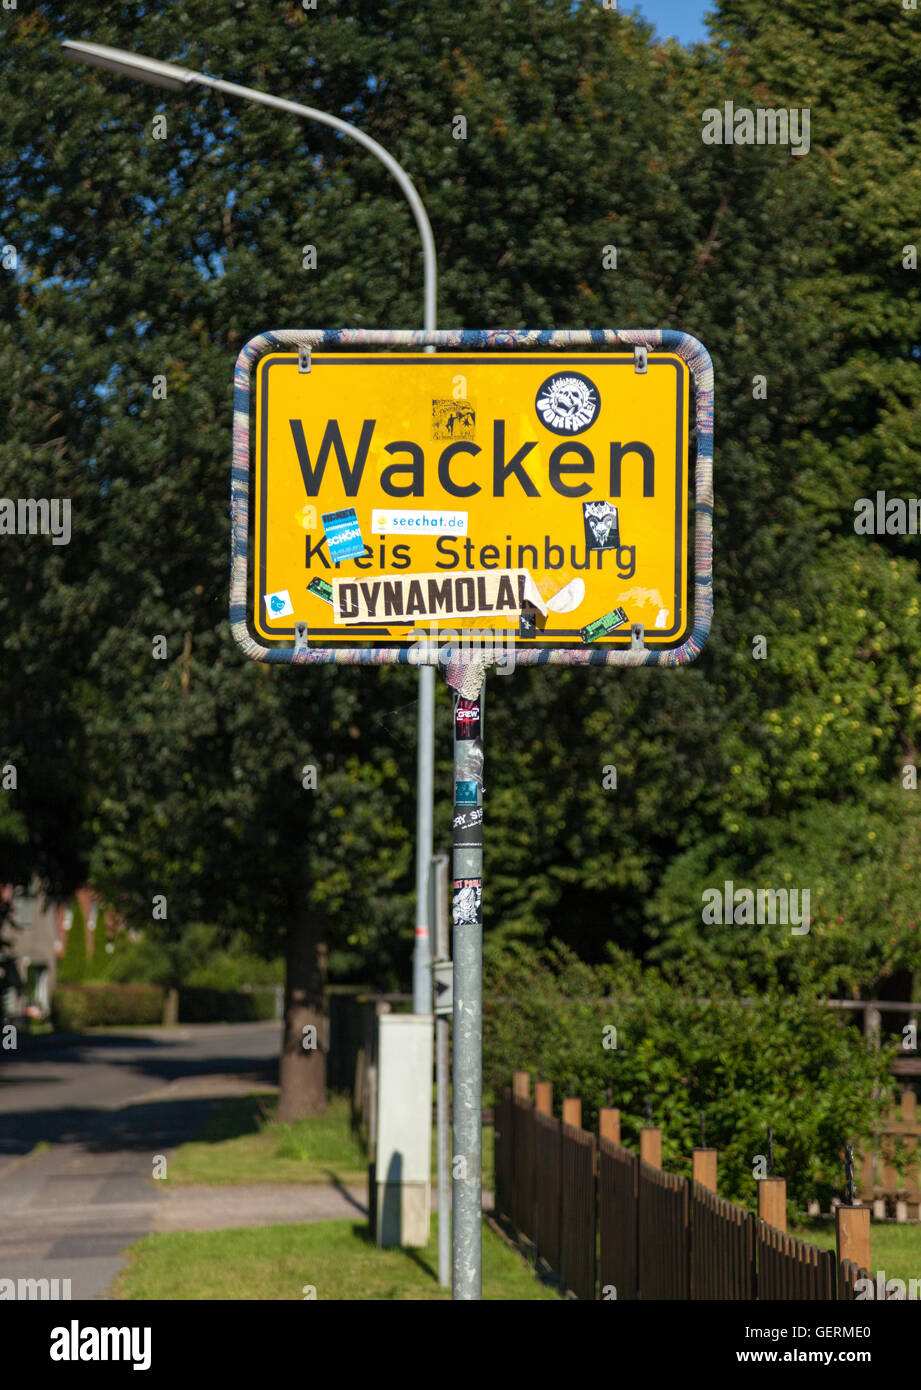 """Wacken, Germany - July 20, 2016: City limits sign of Wacken, home of annual """"Wacken Open Air"""", world's largest Metal - Stock Image"""